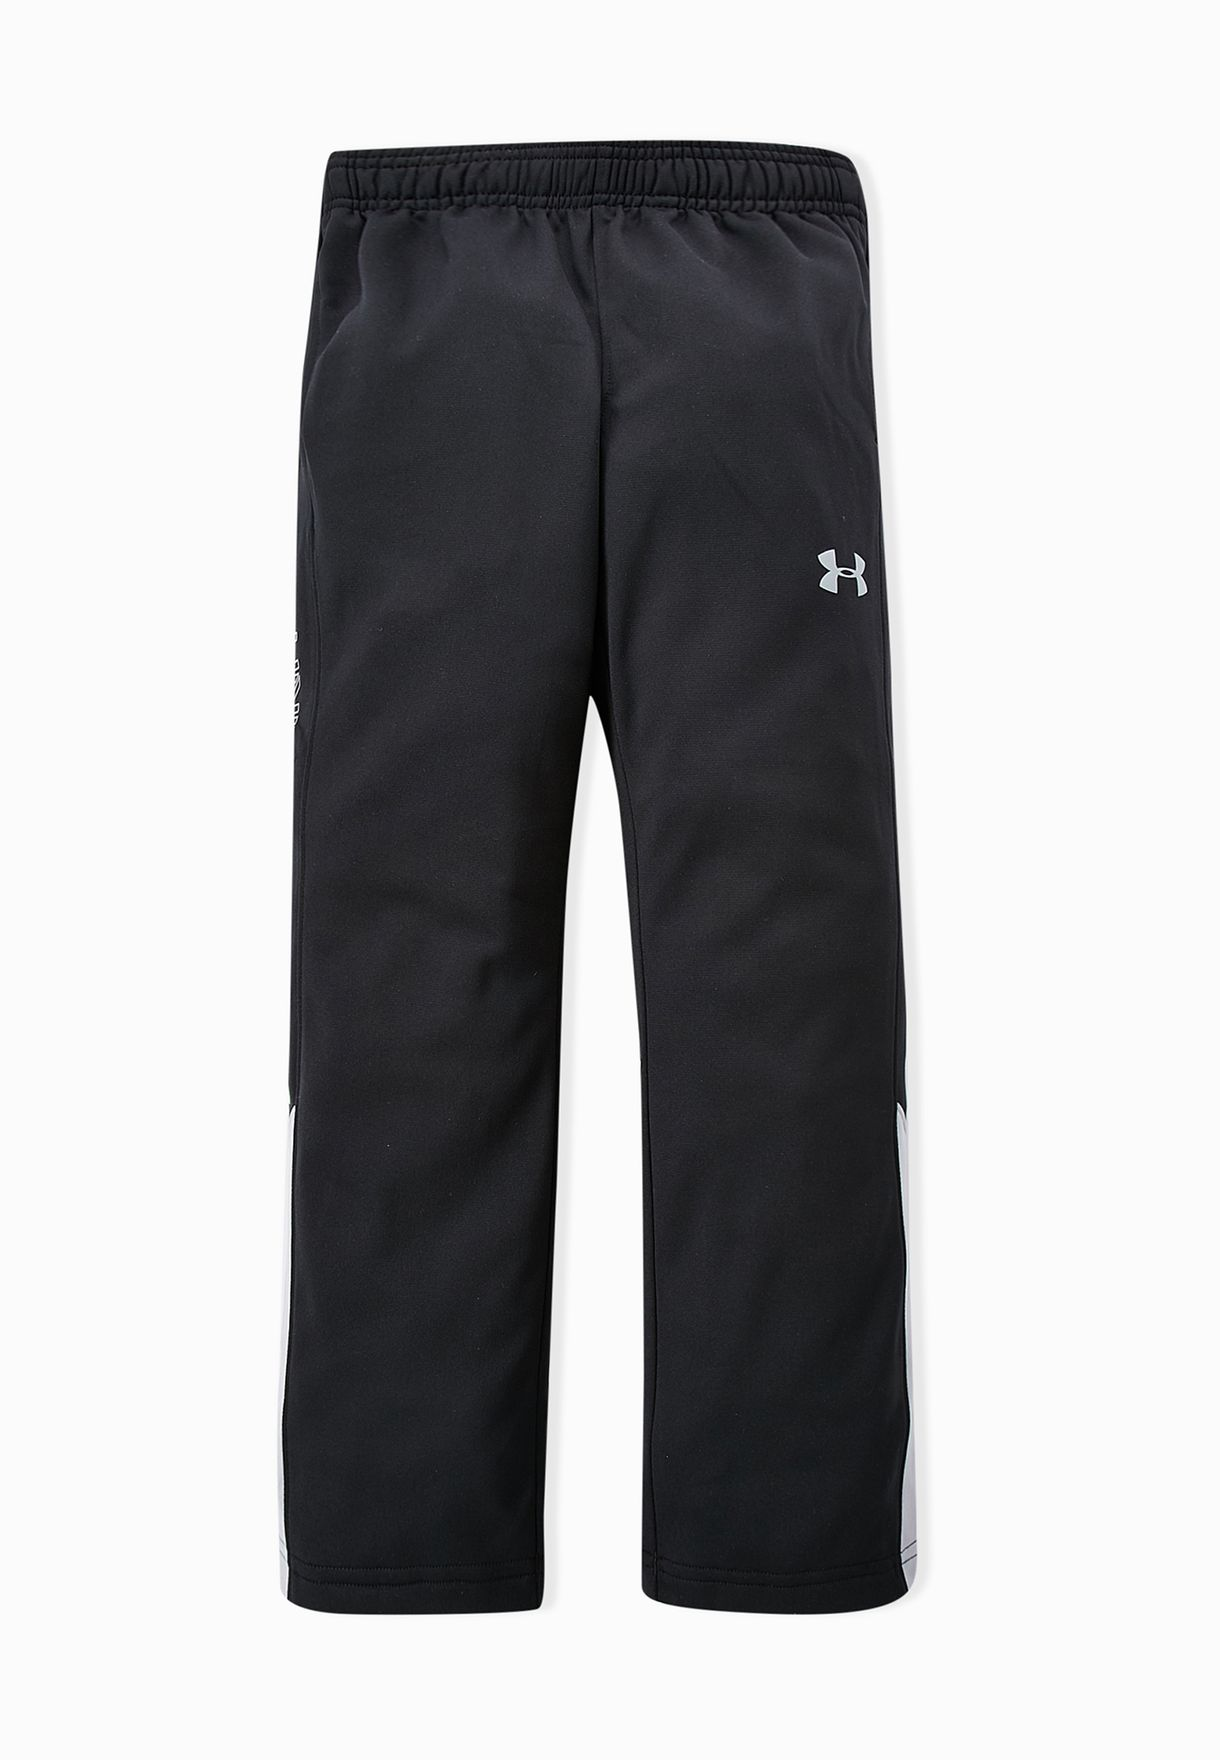 Youth Brawler 2.0 Sweatpants